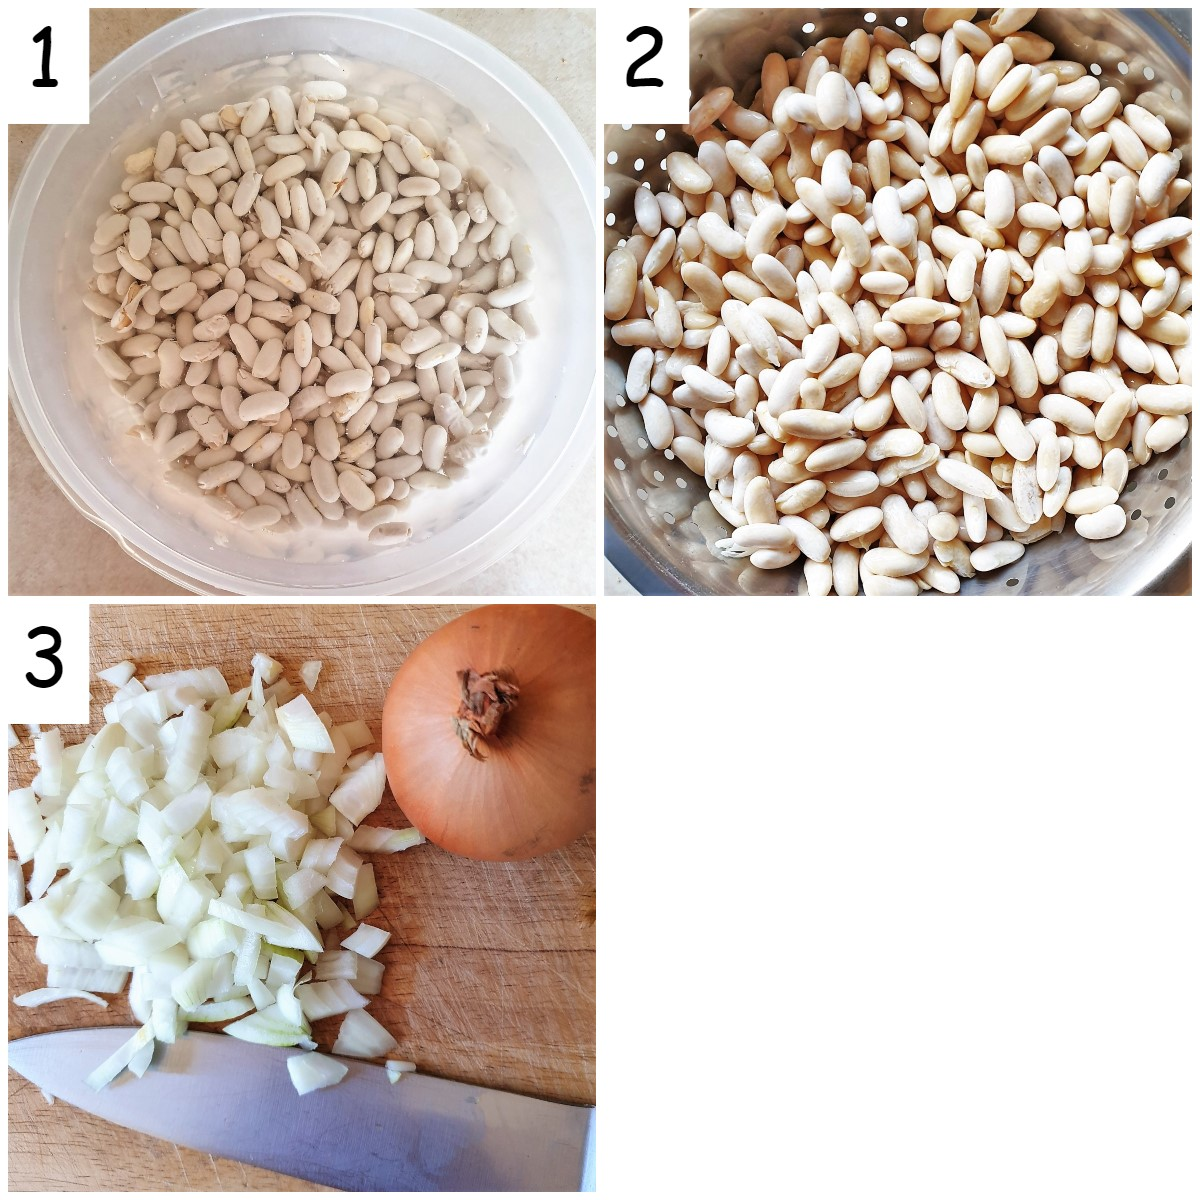 Three images showing raw beans being soaked in water, the beans after being soaked, and a pile of chopped onions.